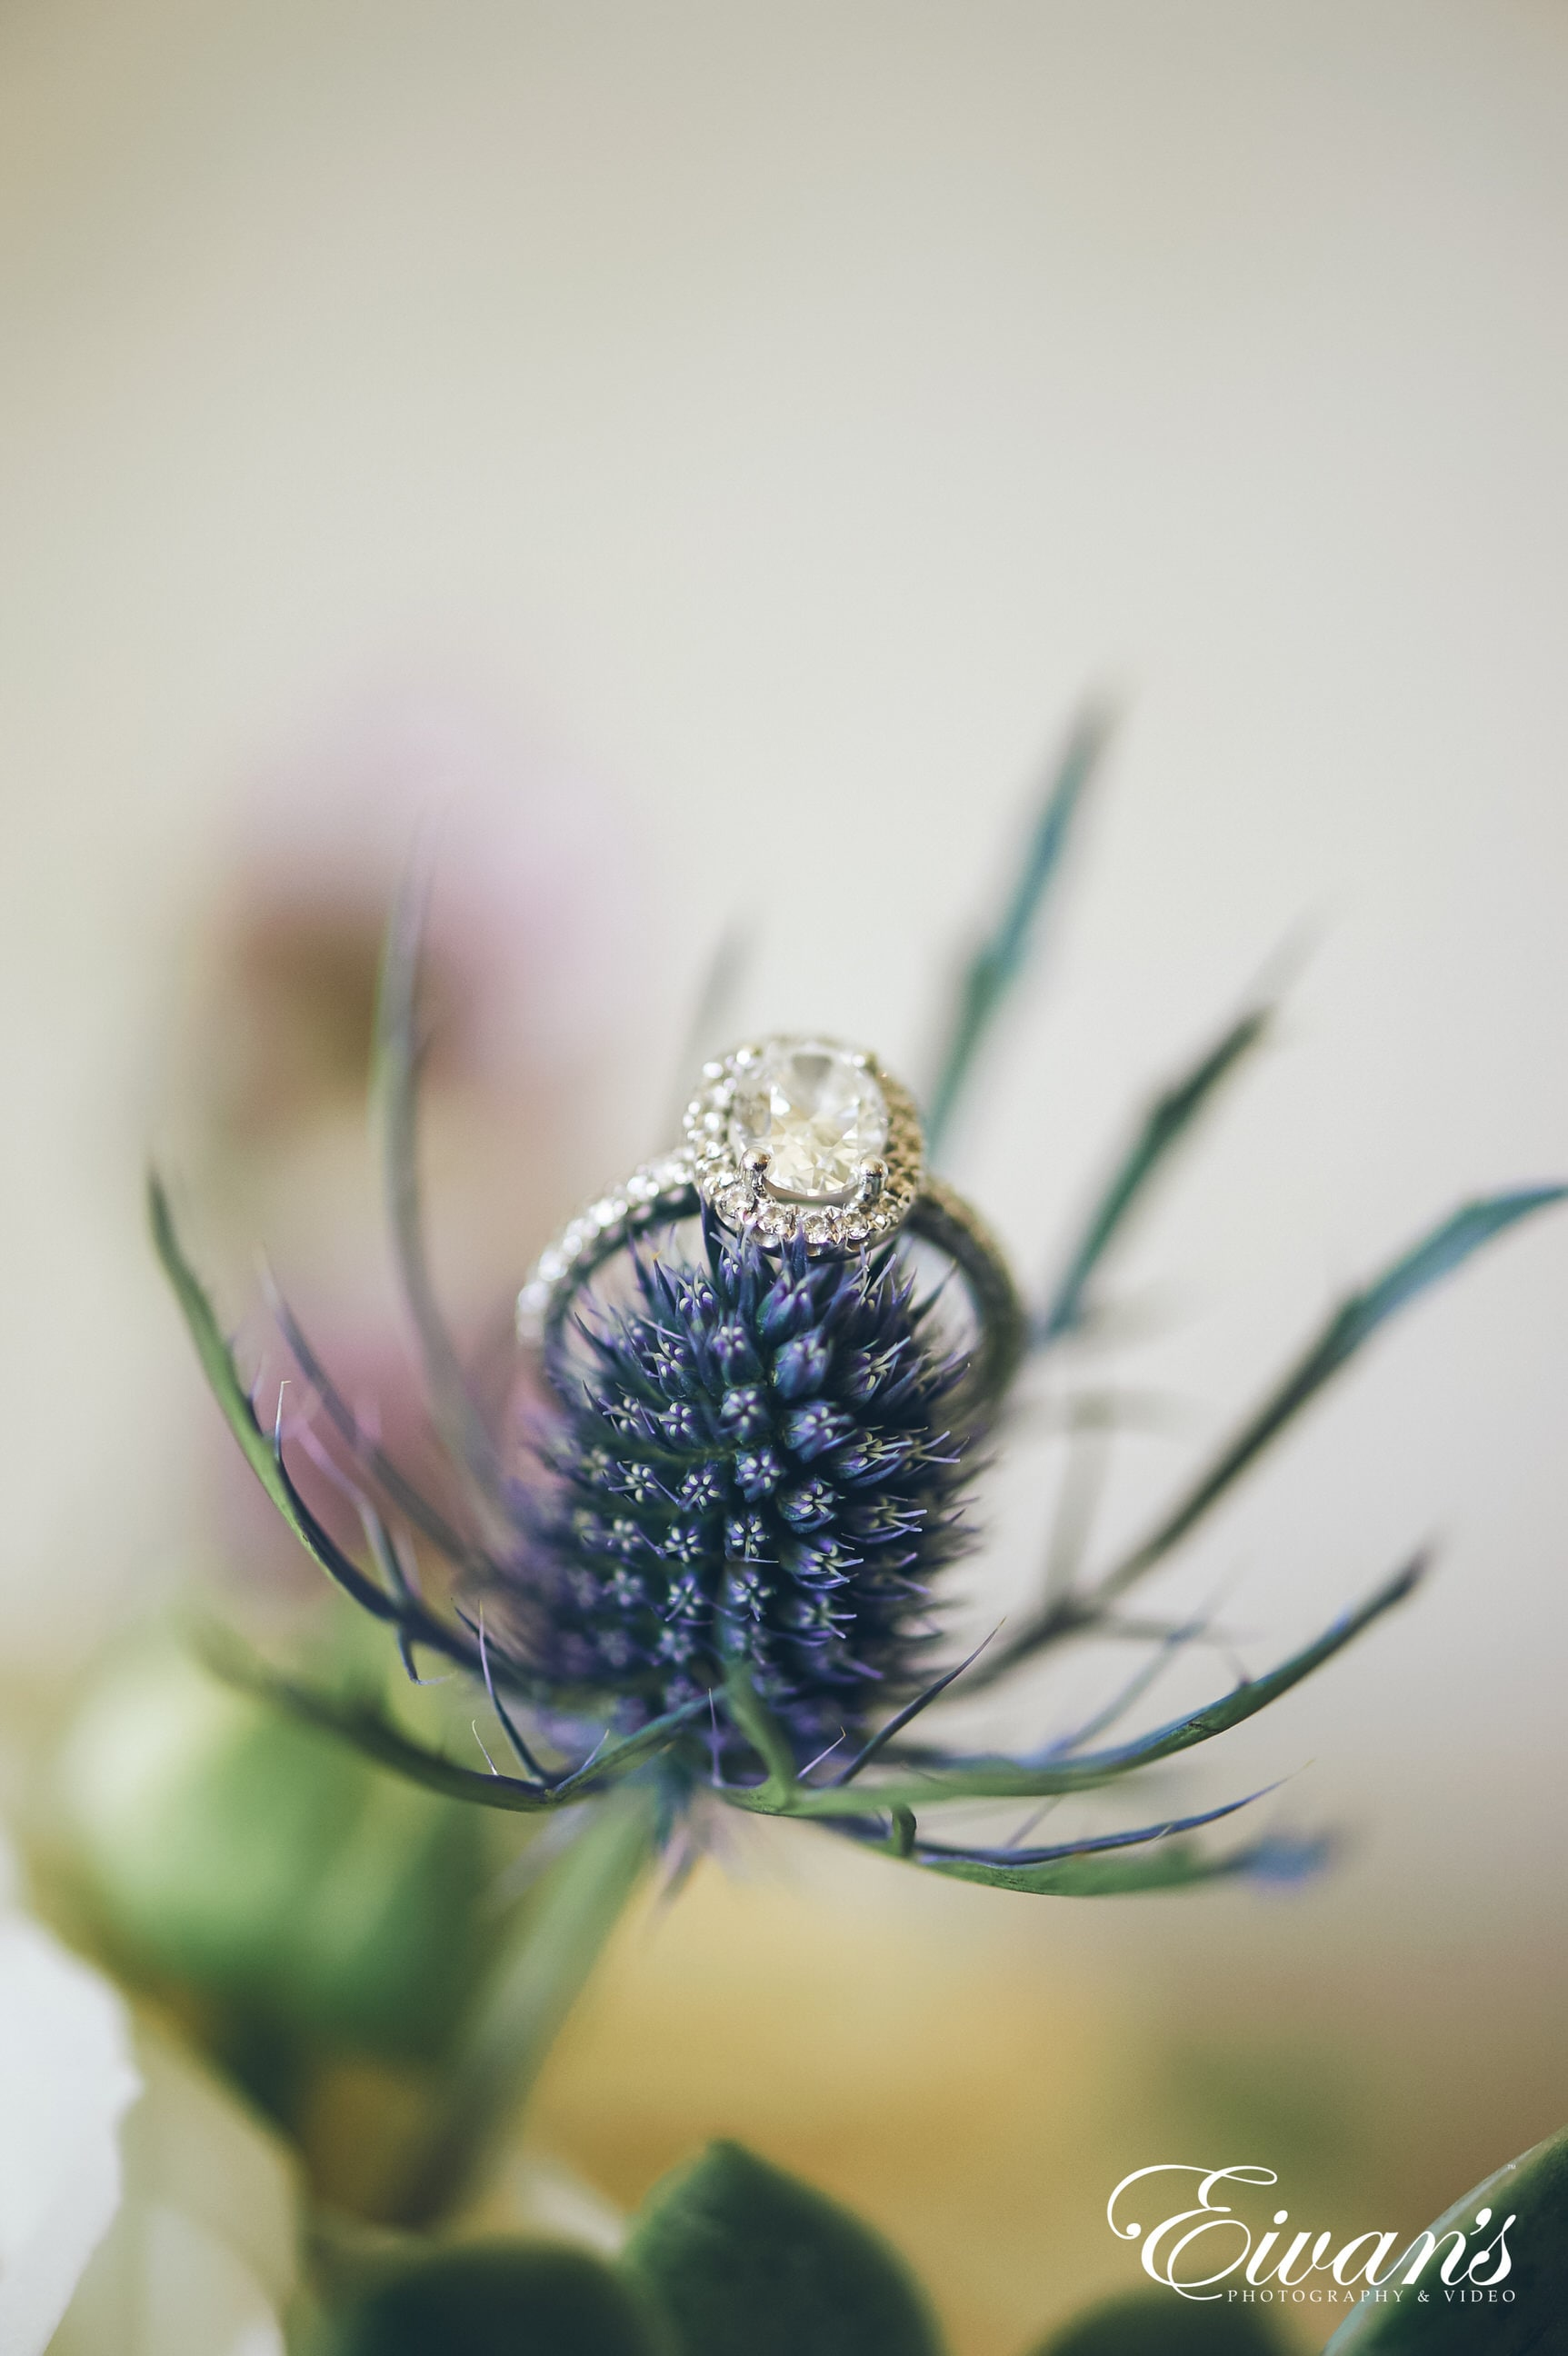 close up shot of flower with a diamond ring on it